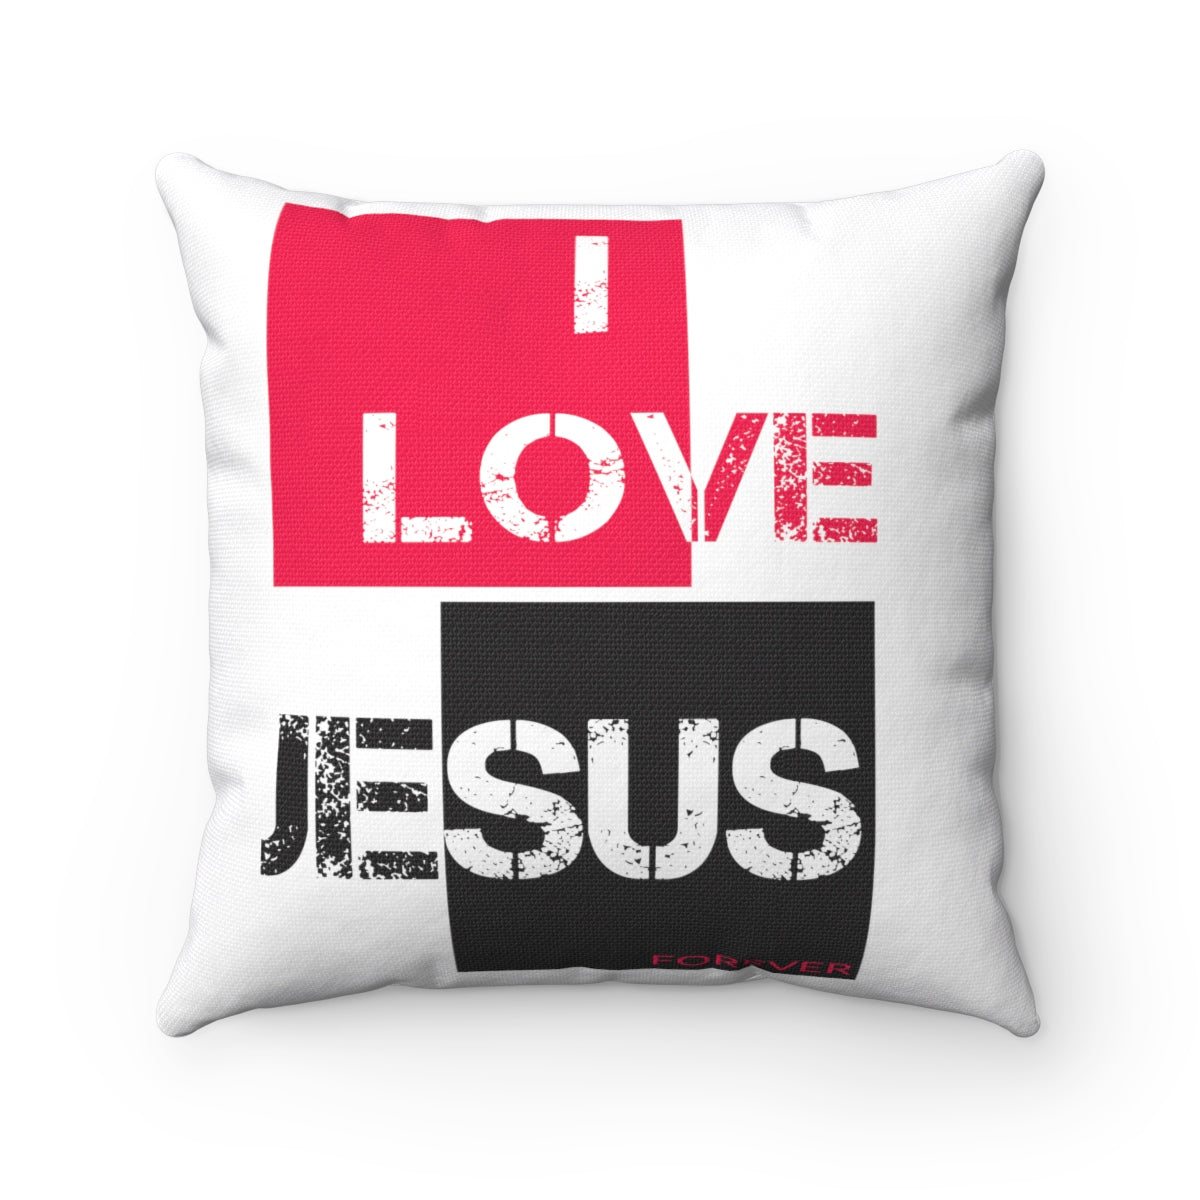 I LOVE JESUS Spun Polyester Square Pillow